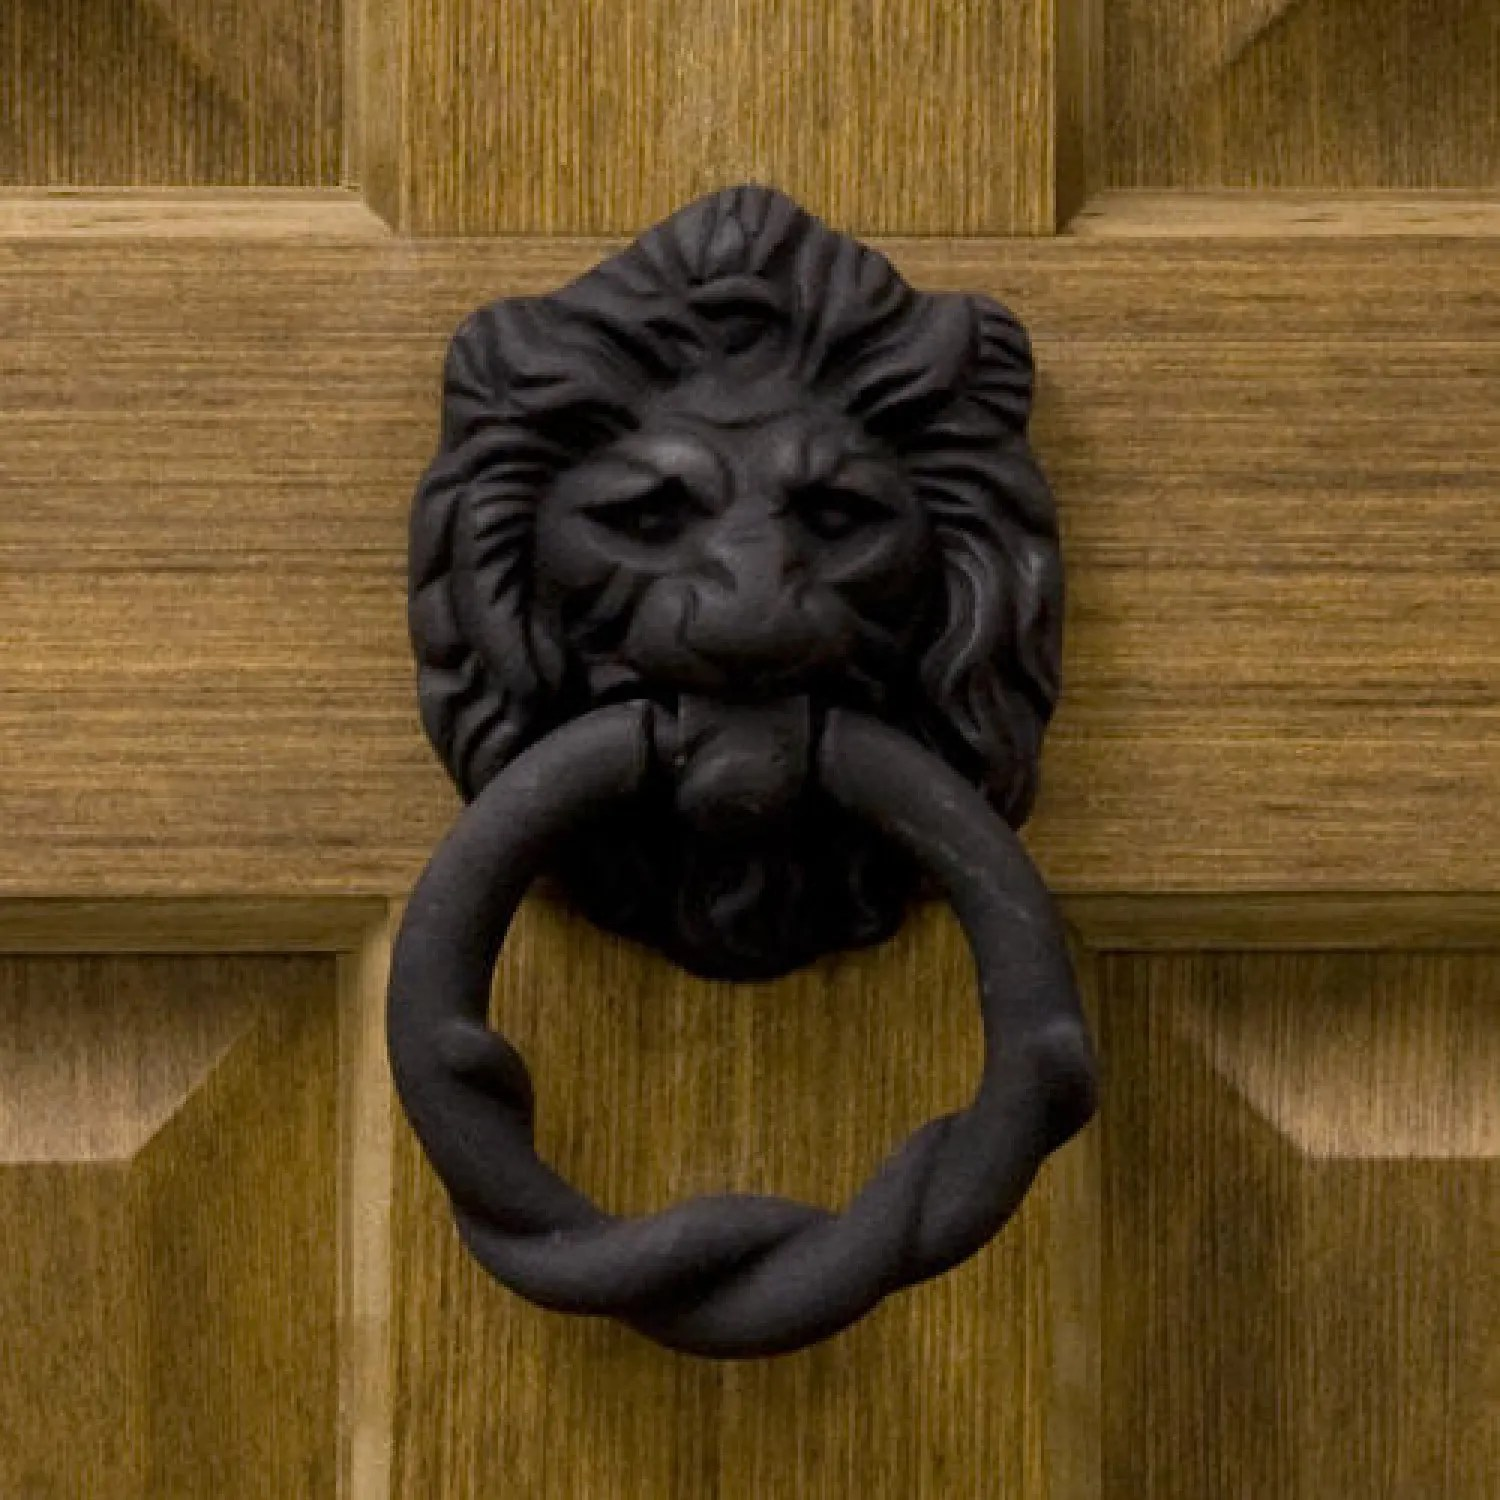 Rustic Door Knockers Rustic Iron Lion Door Knocker Hardware